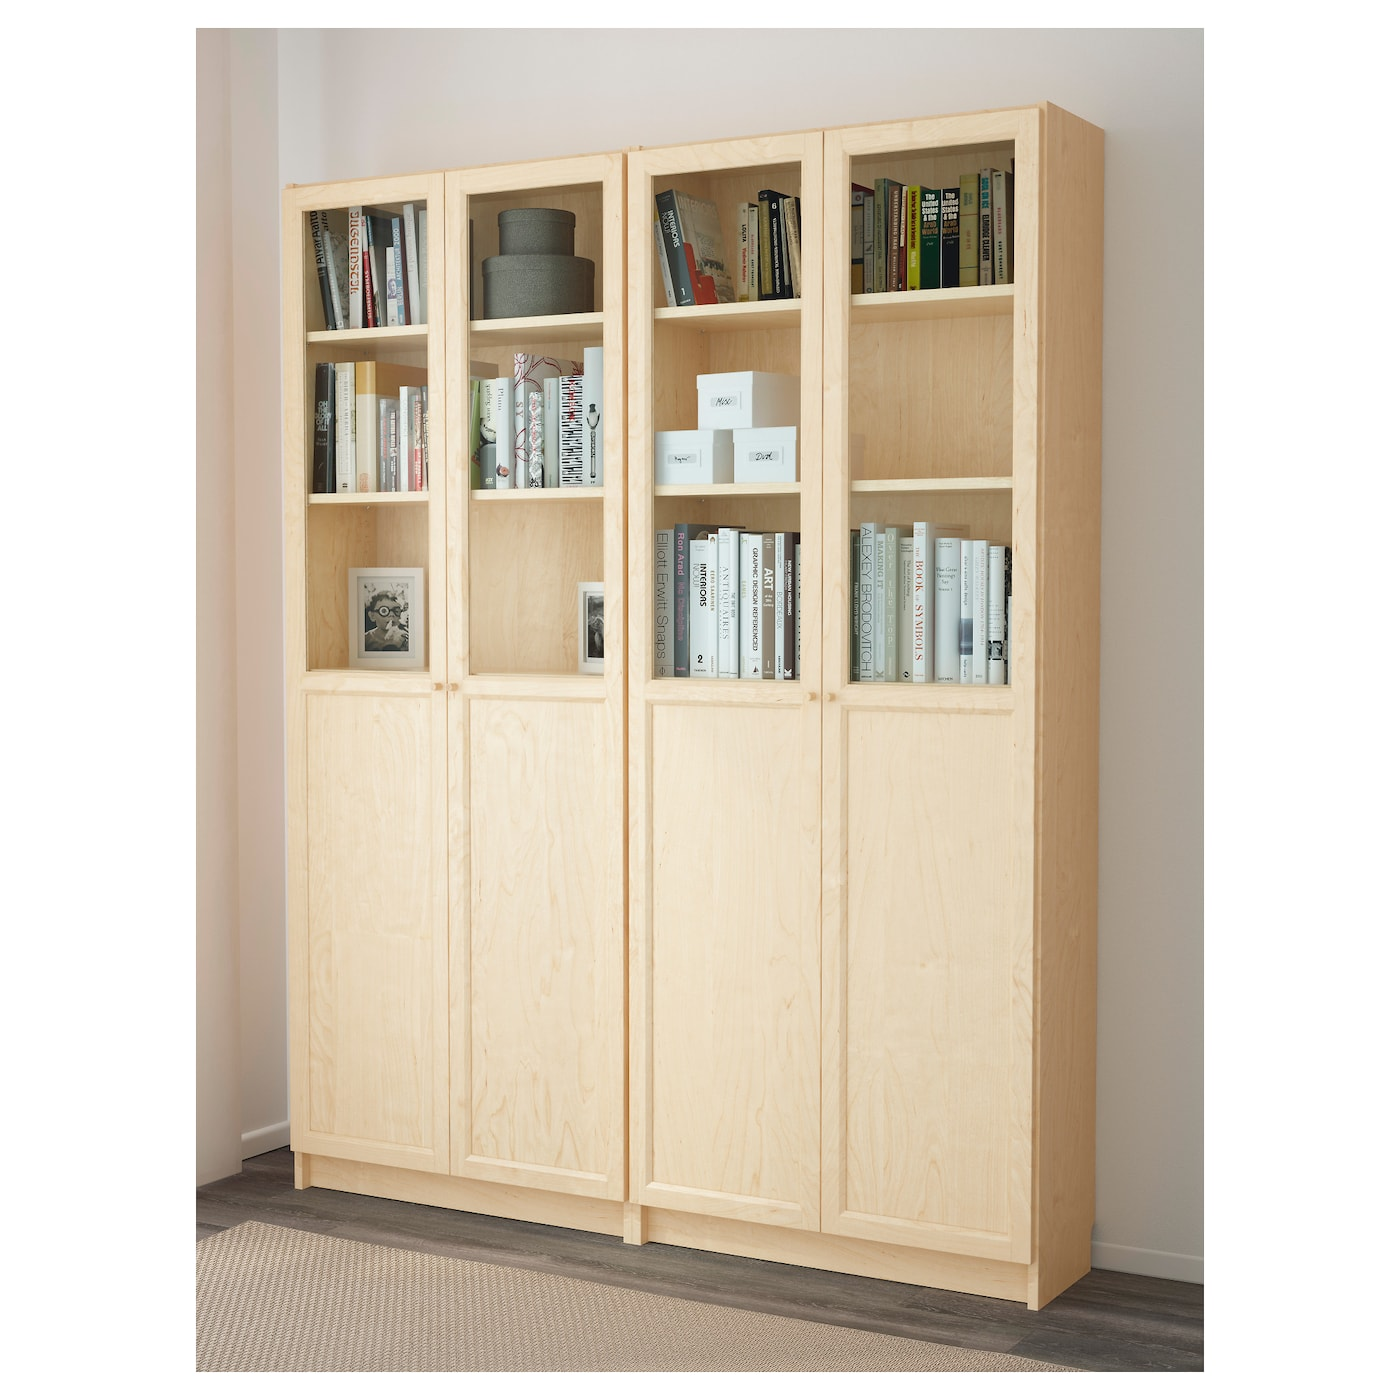 Ikea Billy Oxberg Bookcase Adjule Shelves Adapt E Between According To Your Needs